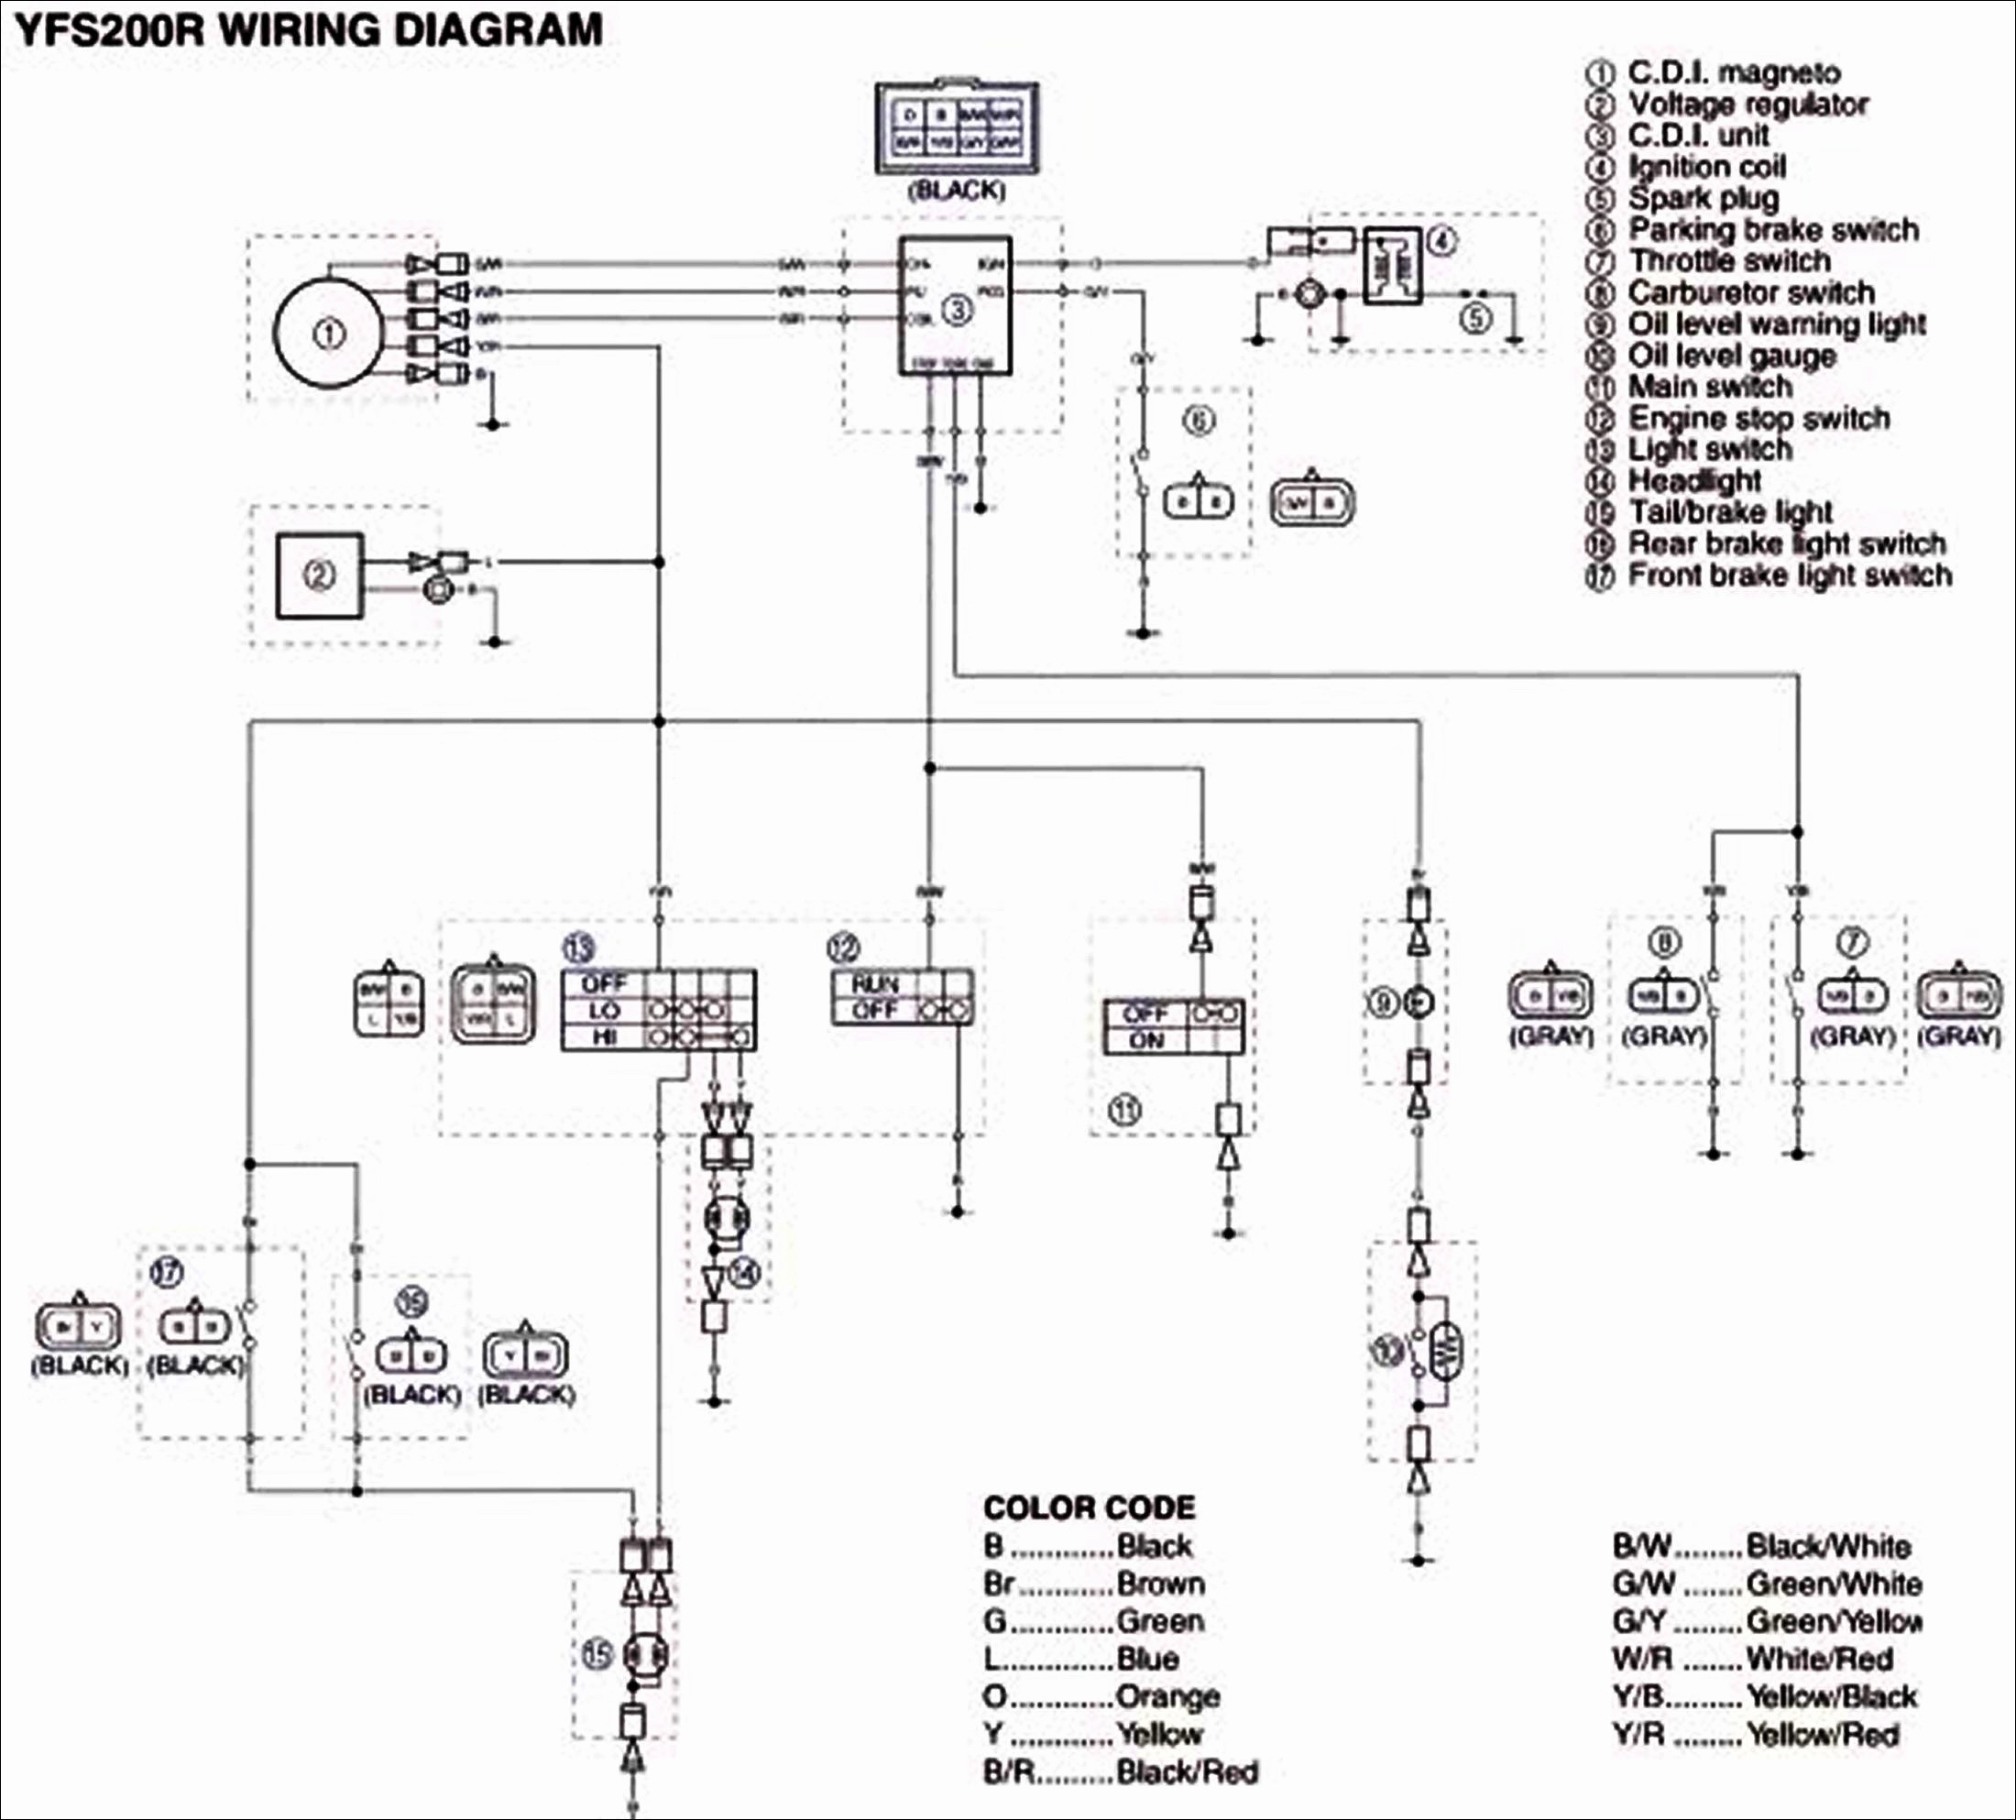 Wiring Diagram For Yamaha Big Bear 350 - seniorsclub.it circuit-acceptable  - circuit-acceptable.pietrodavico.itdiagram database - Pietro da Vico